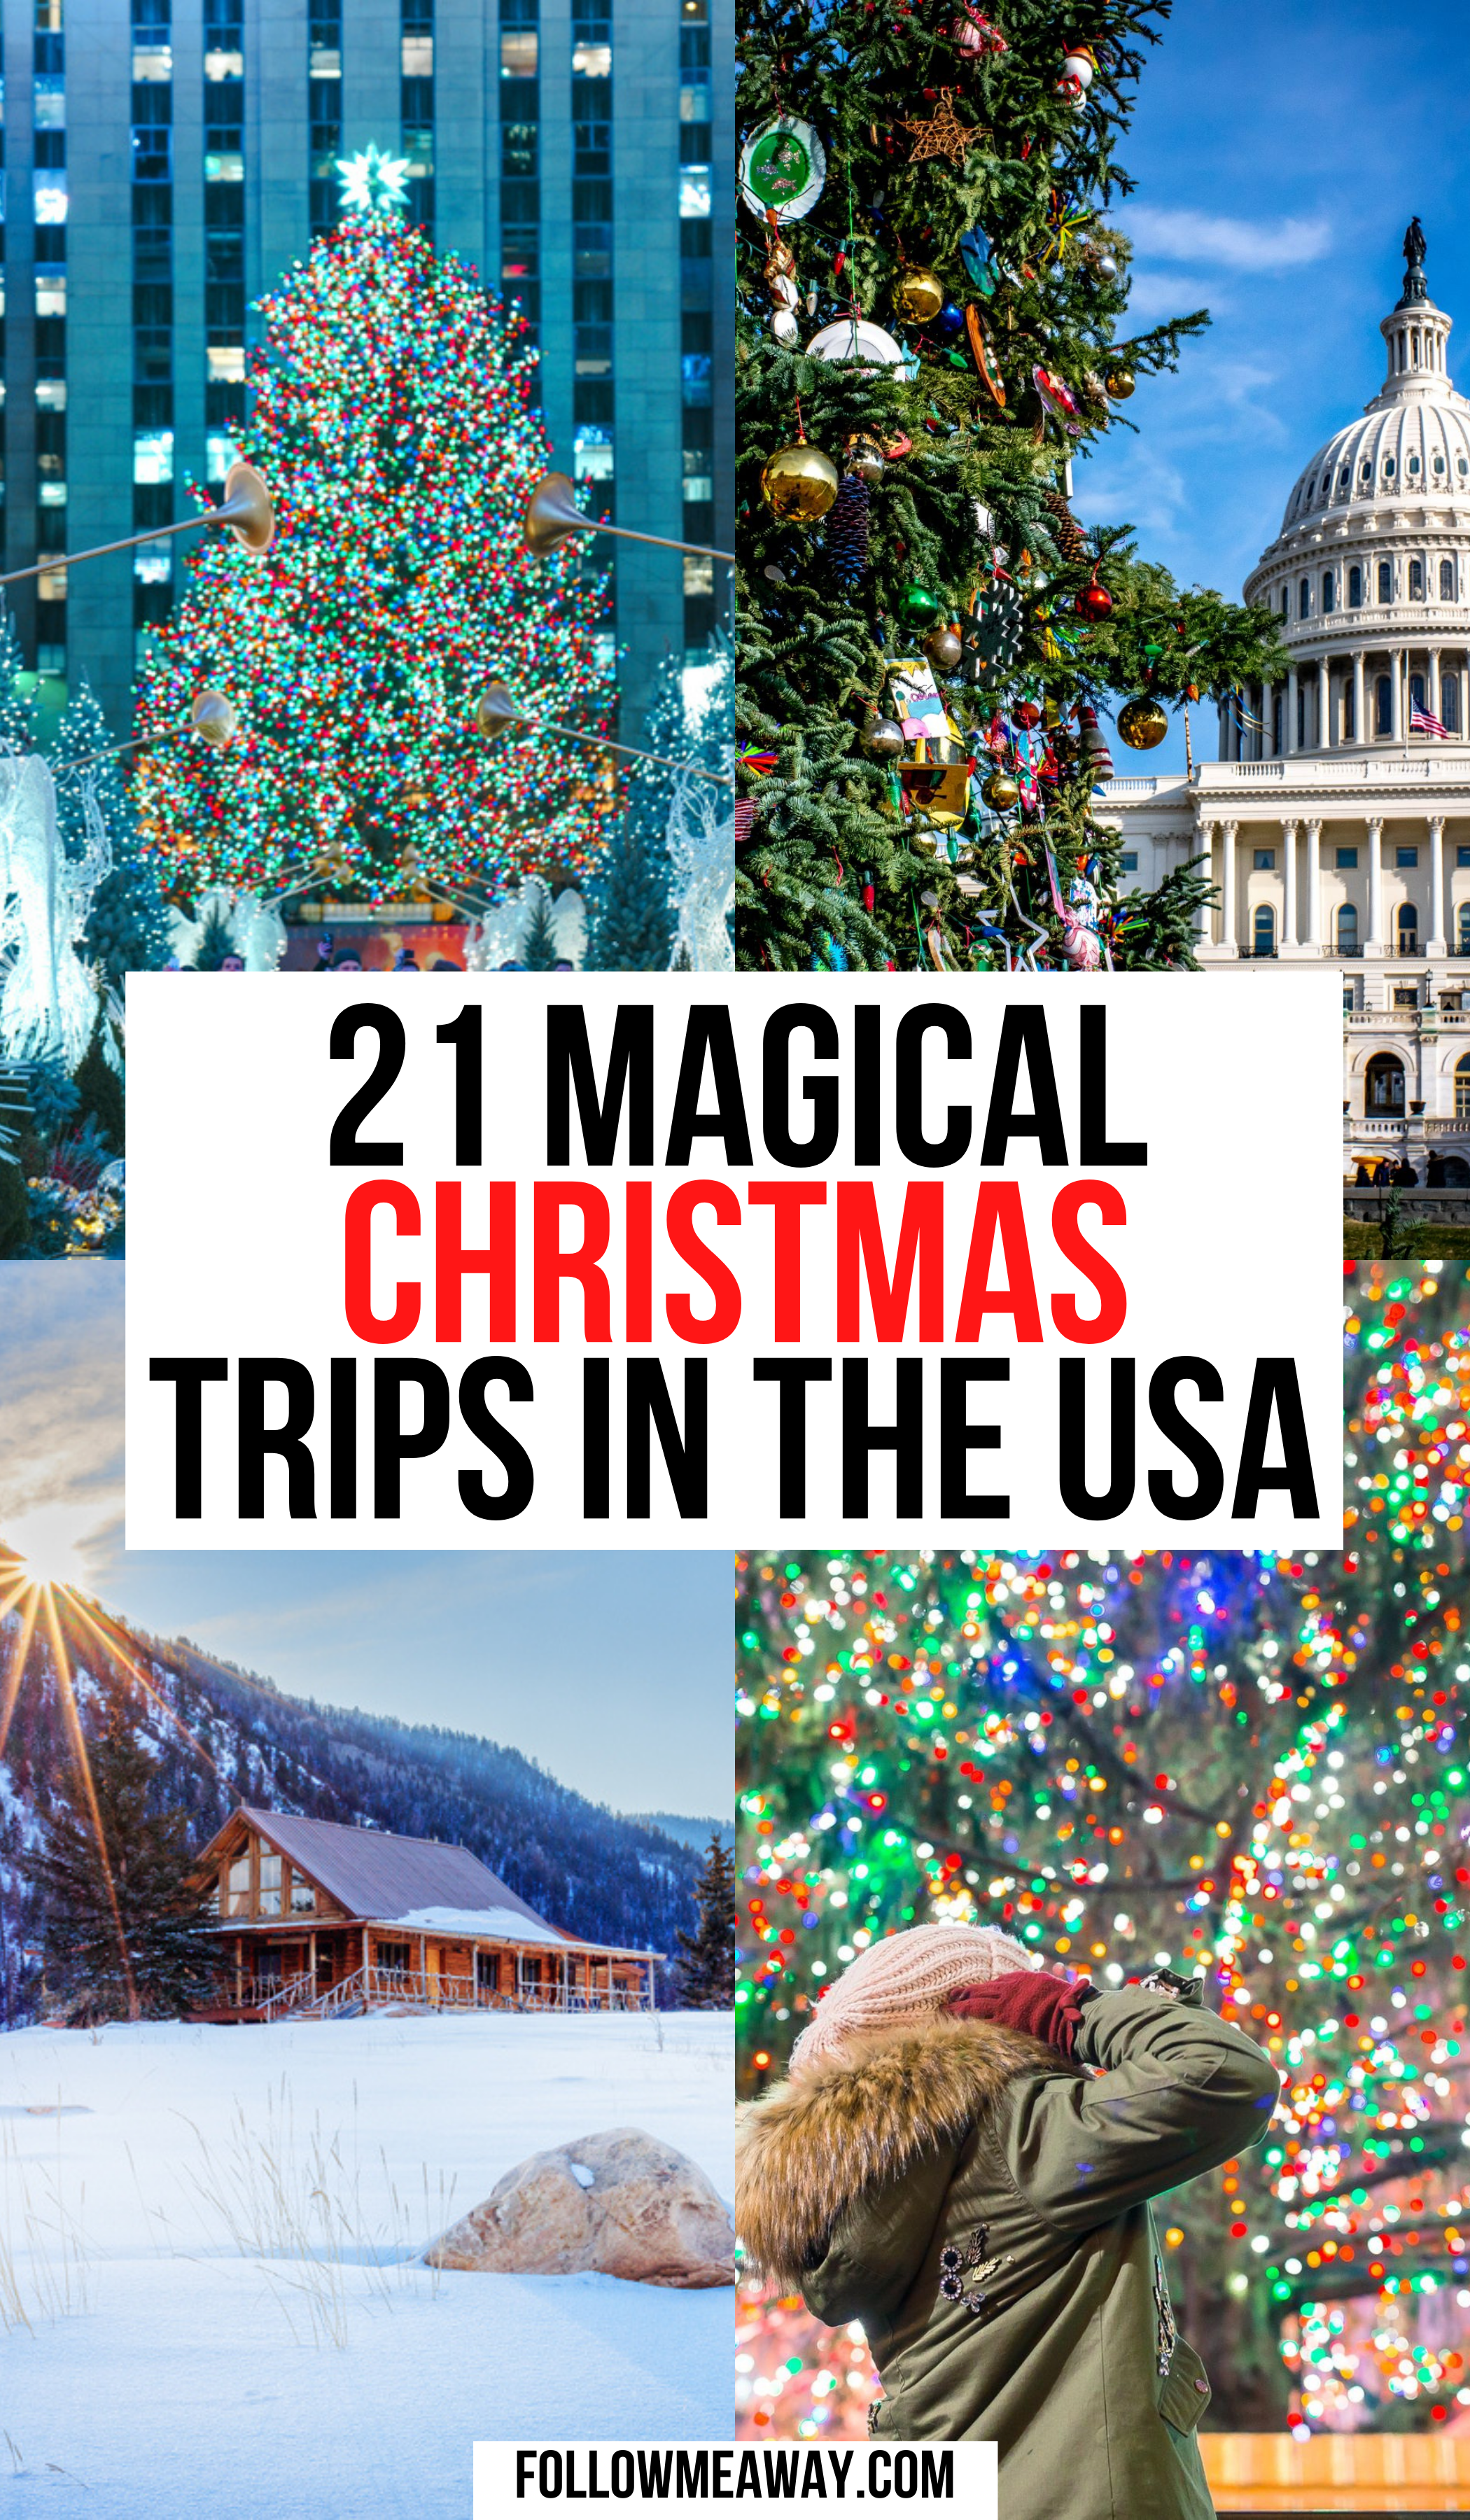 21 Festive Vacation Destinations For Christmas In The Usa Follow Me Away In 2020 Winter Travel Destinations Christmas Travel Destinations Christmas Travel